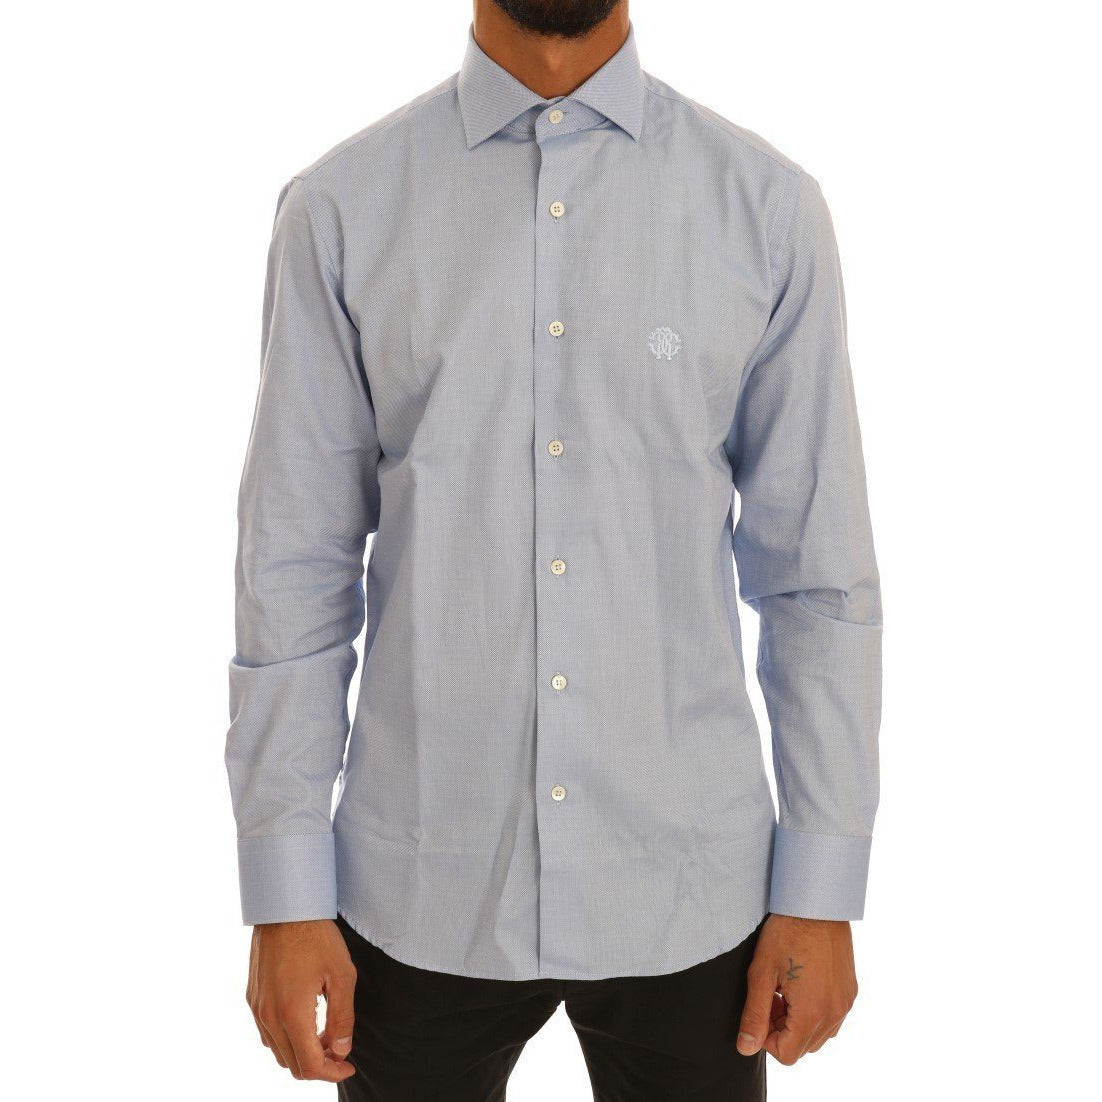 Blue Cotton Slim Fit Dress Shirt Cavalli